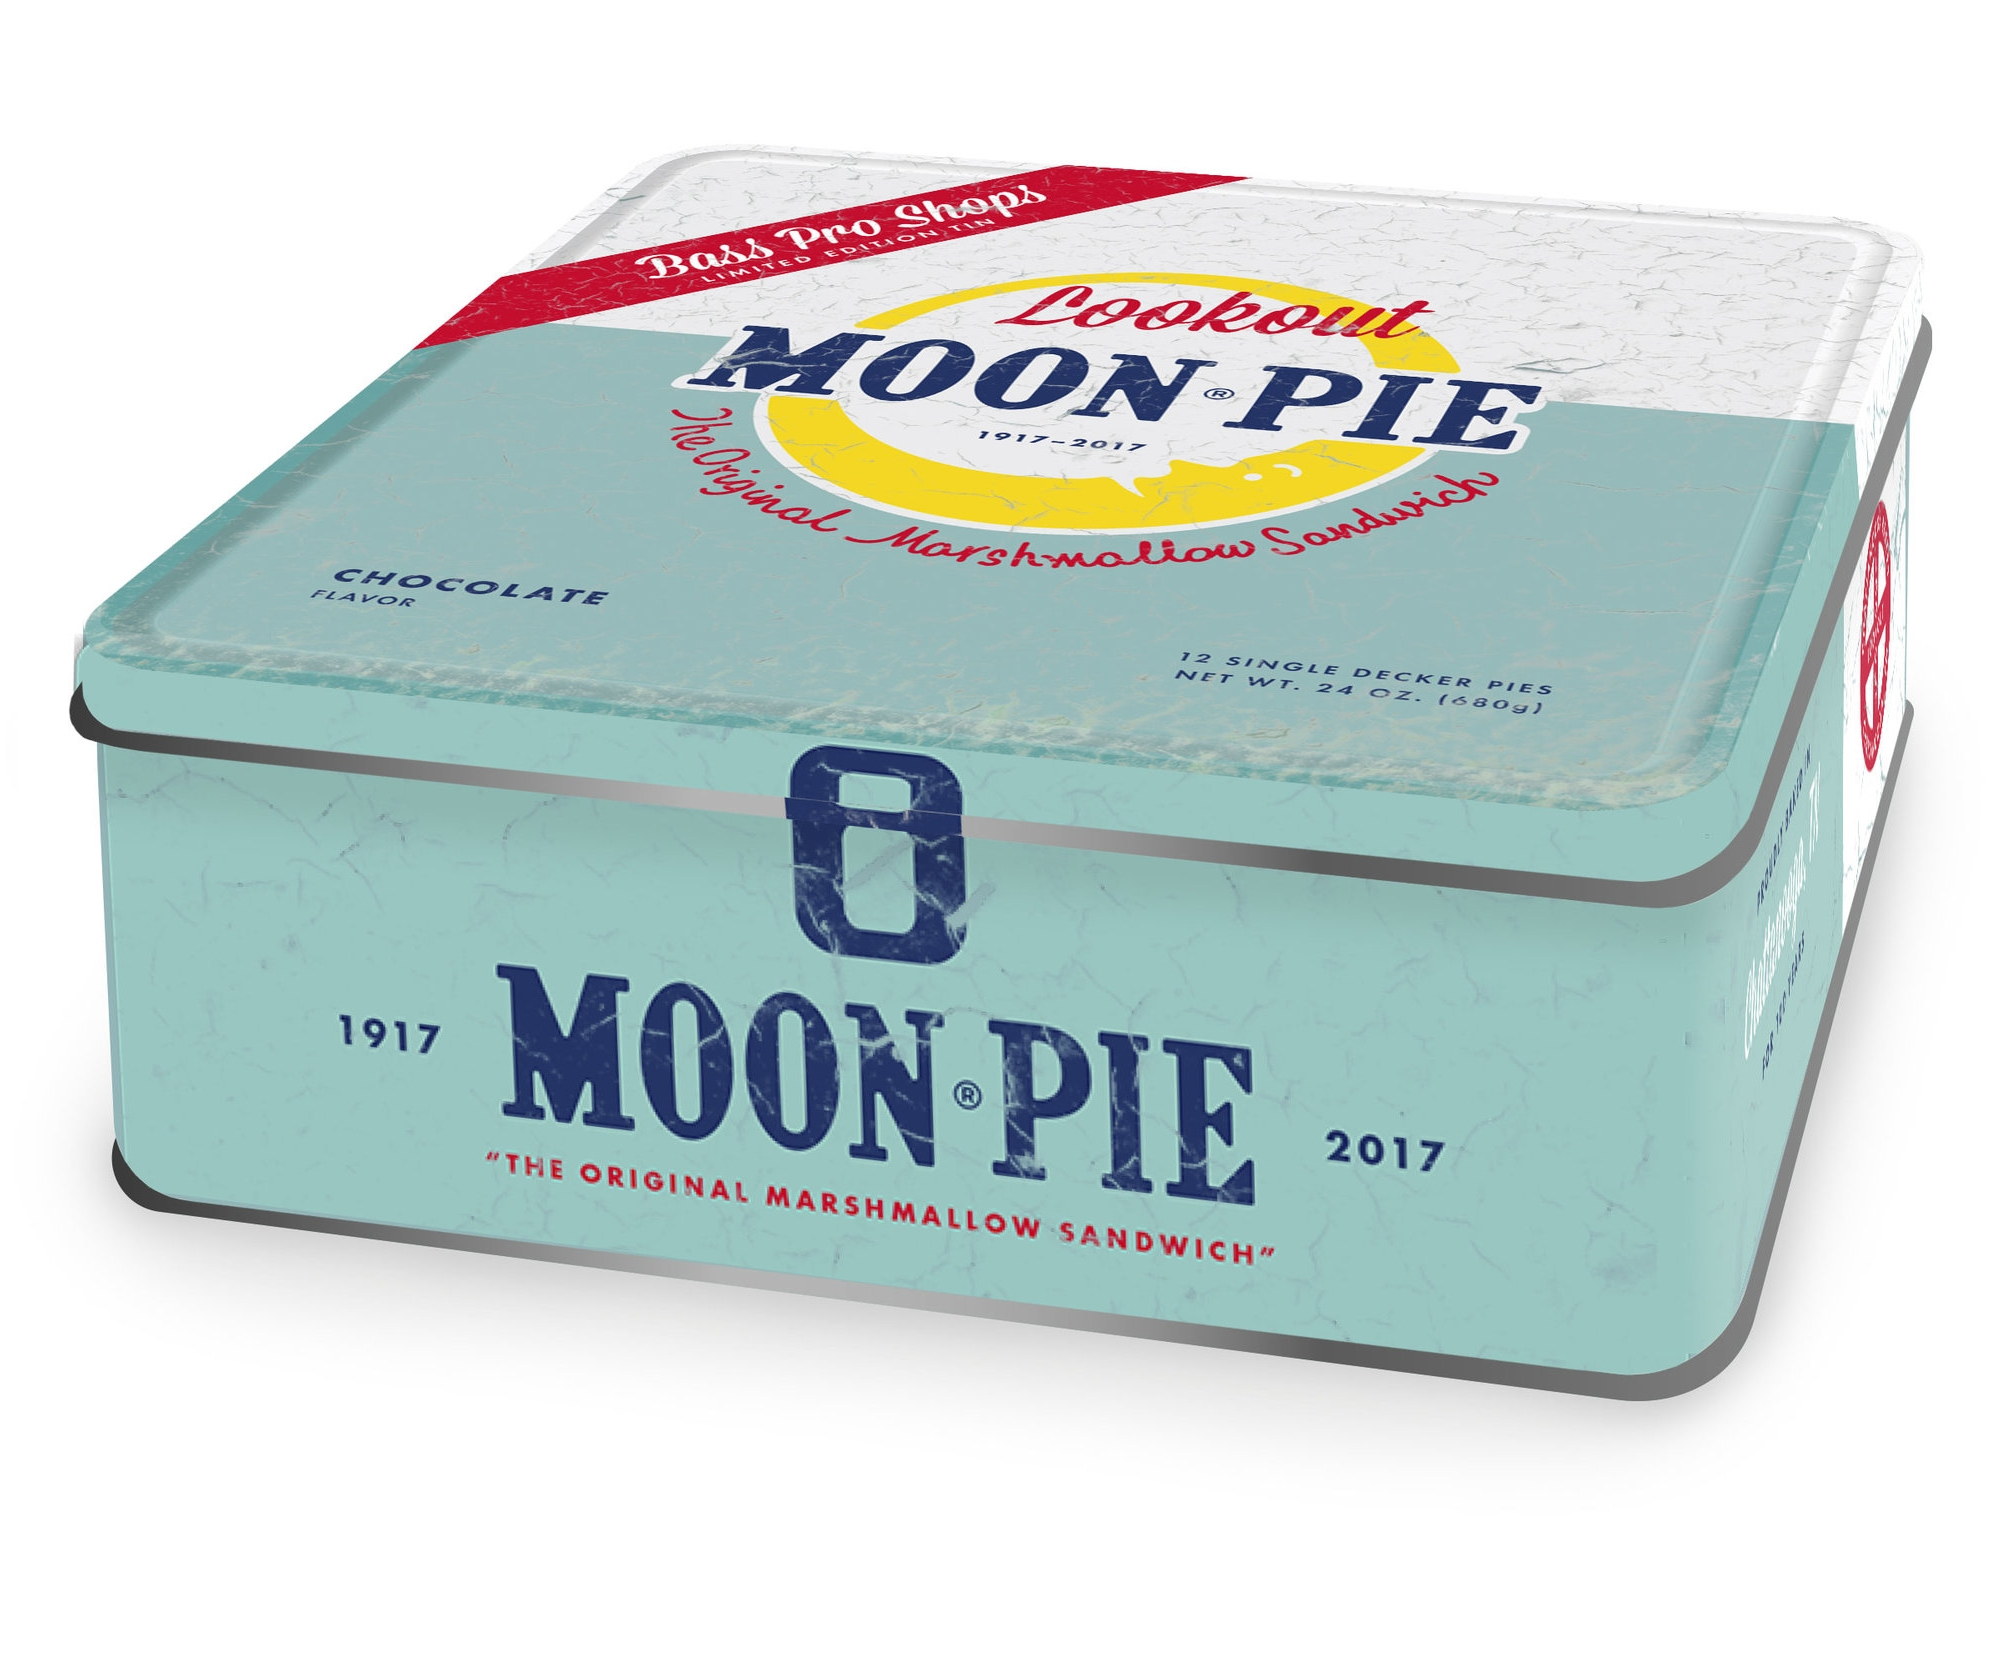 MOON PIE     packaging